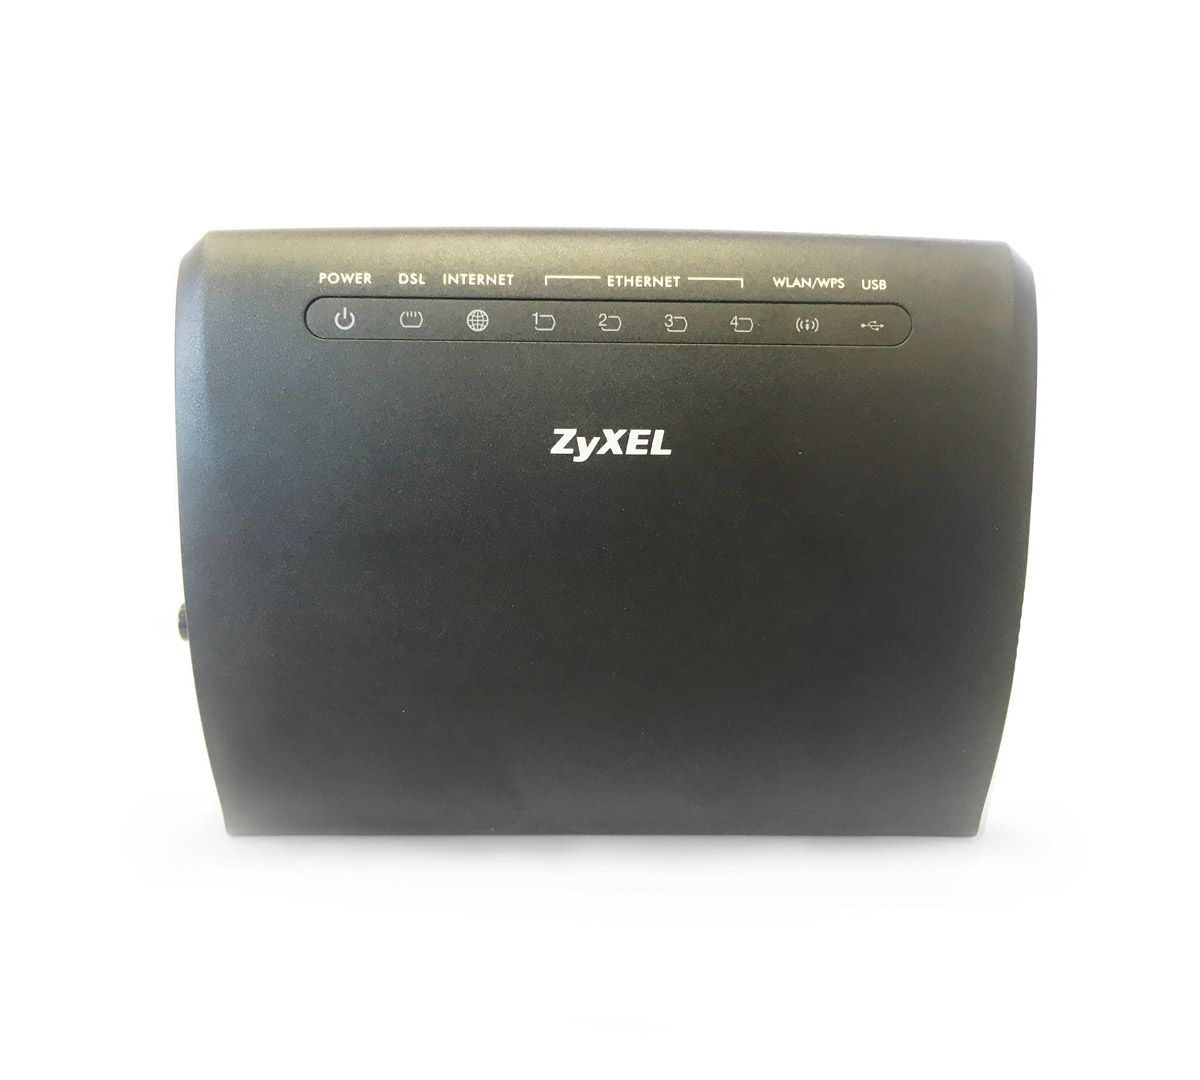 ZyXEL VMG1312-B10D features 802.11n technology